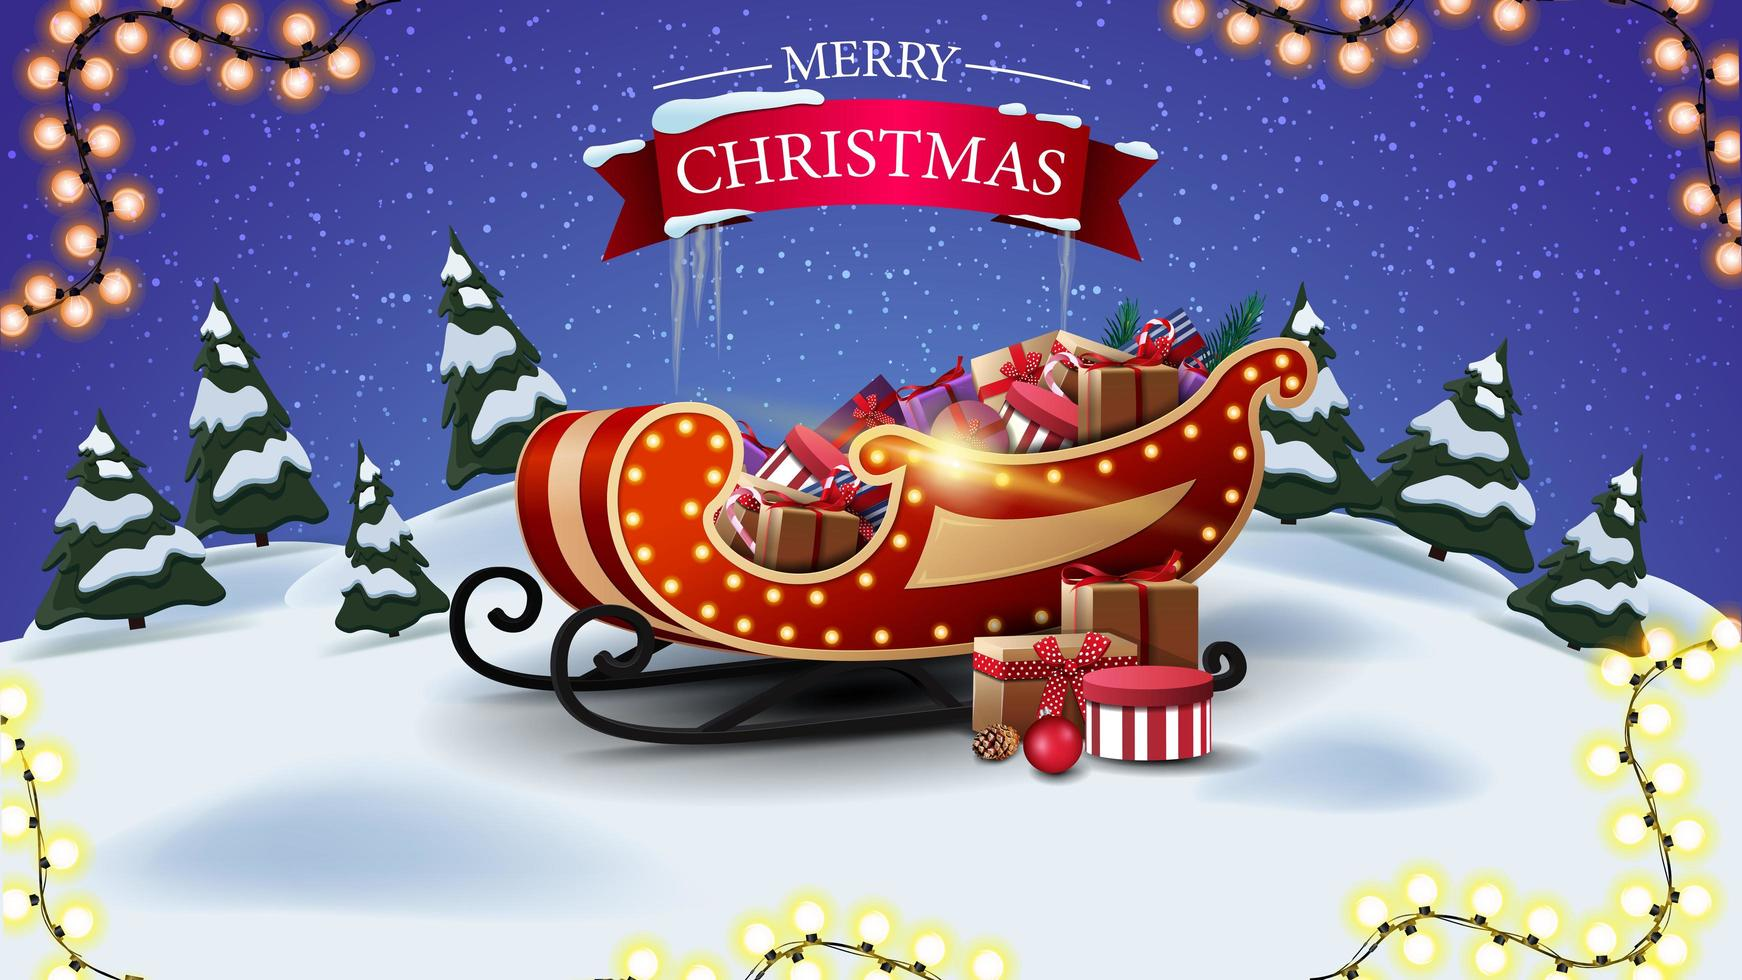 Merry Christmas, postcard with cartoon winter landscape and Santa sleigh with presents vector